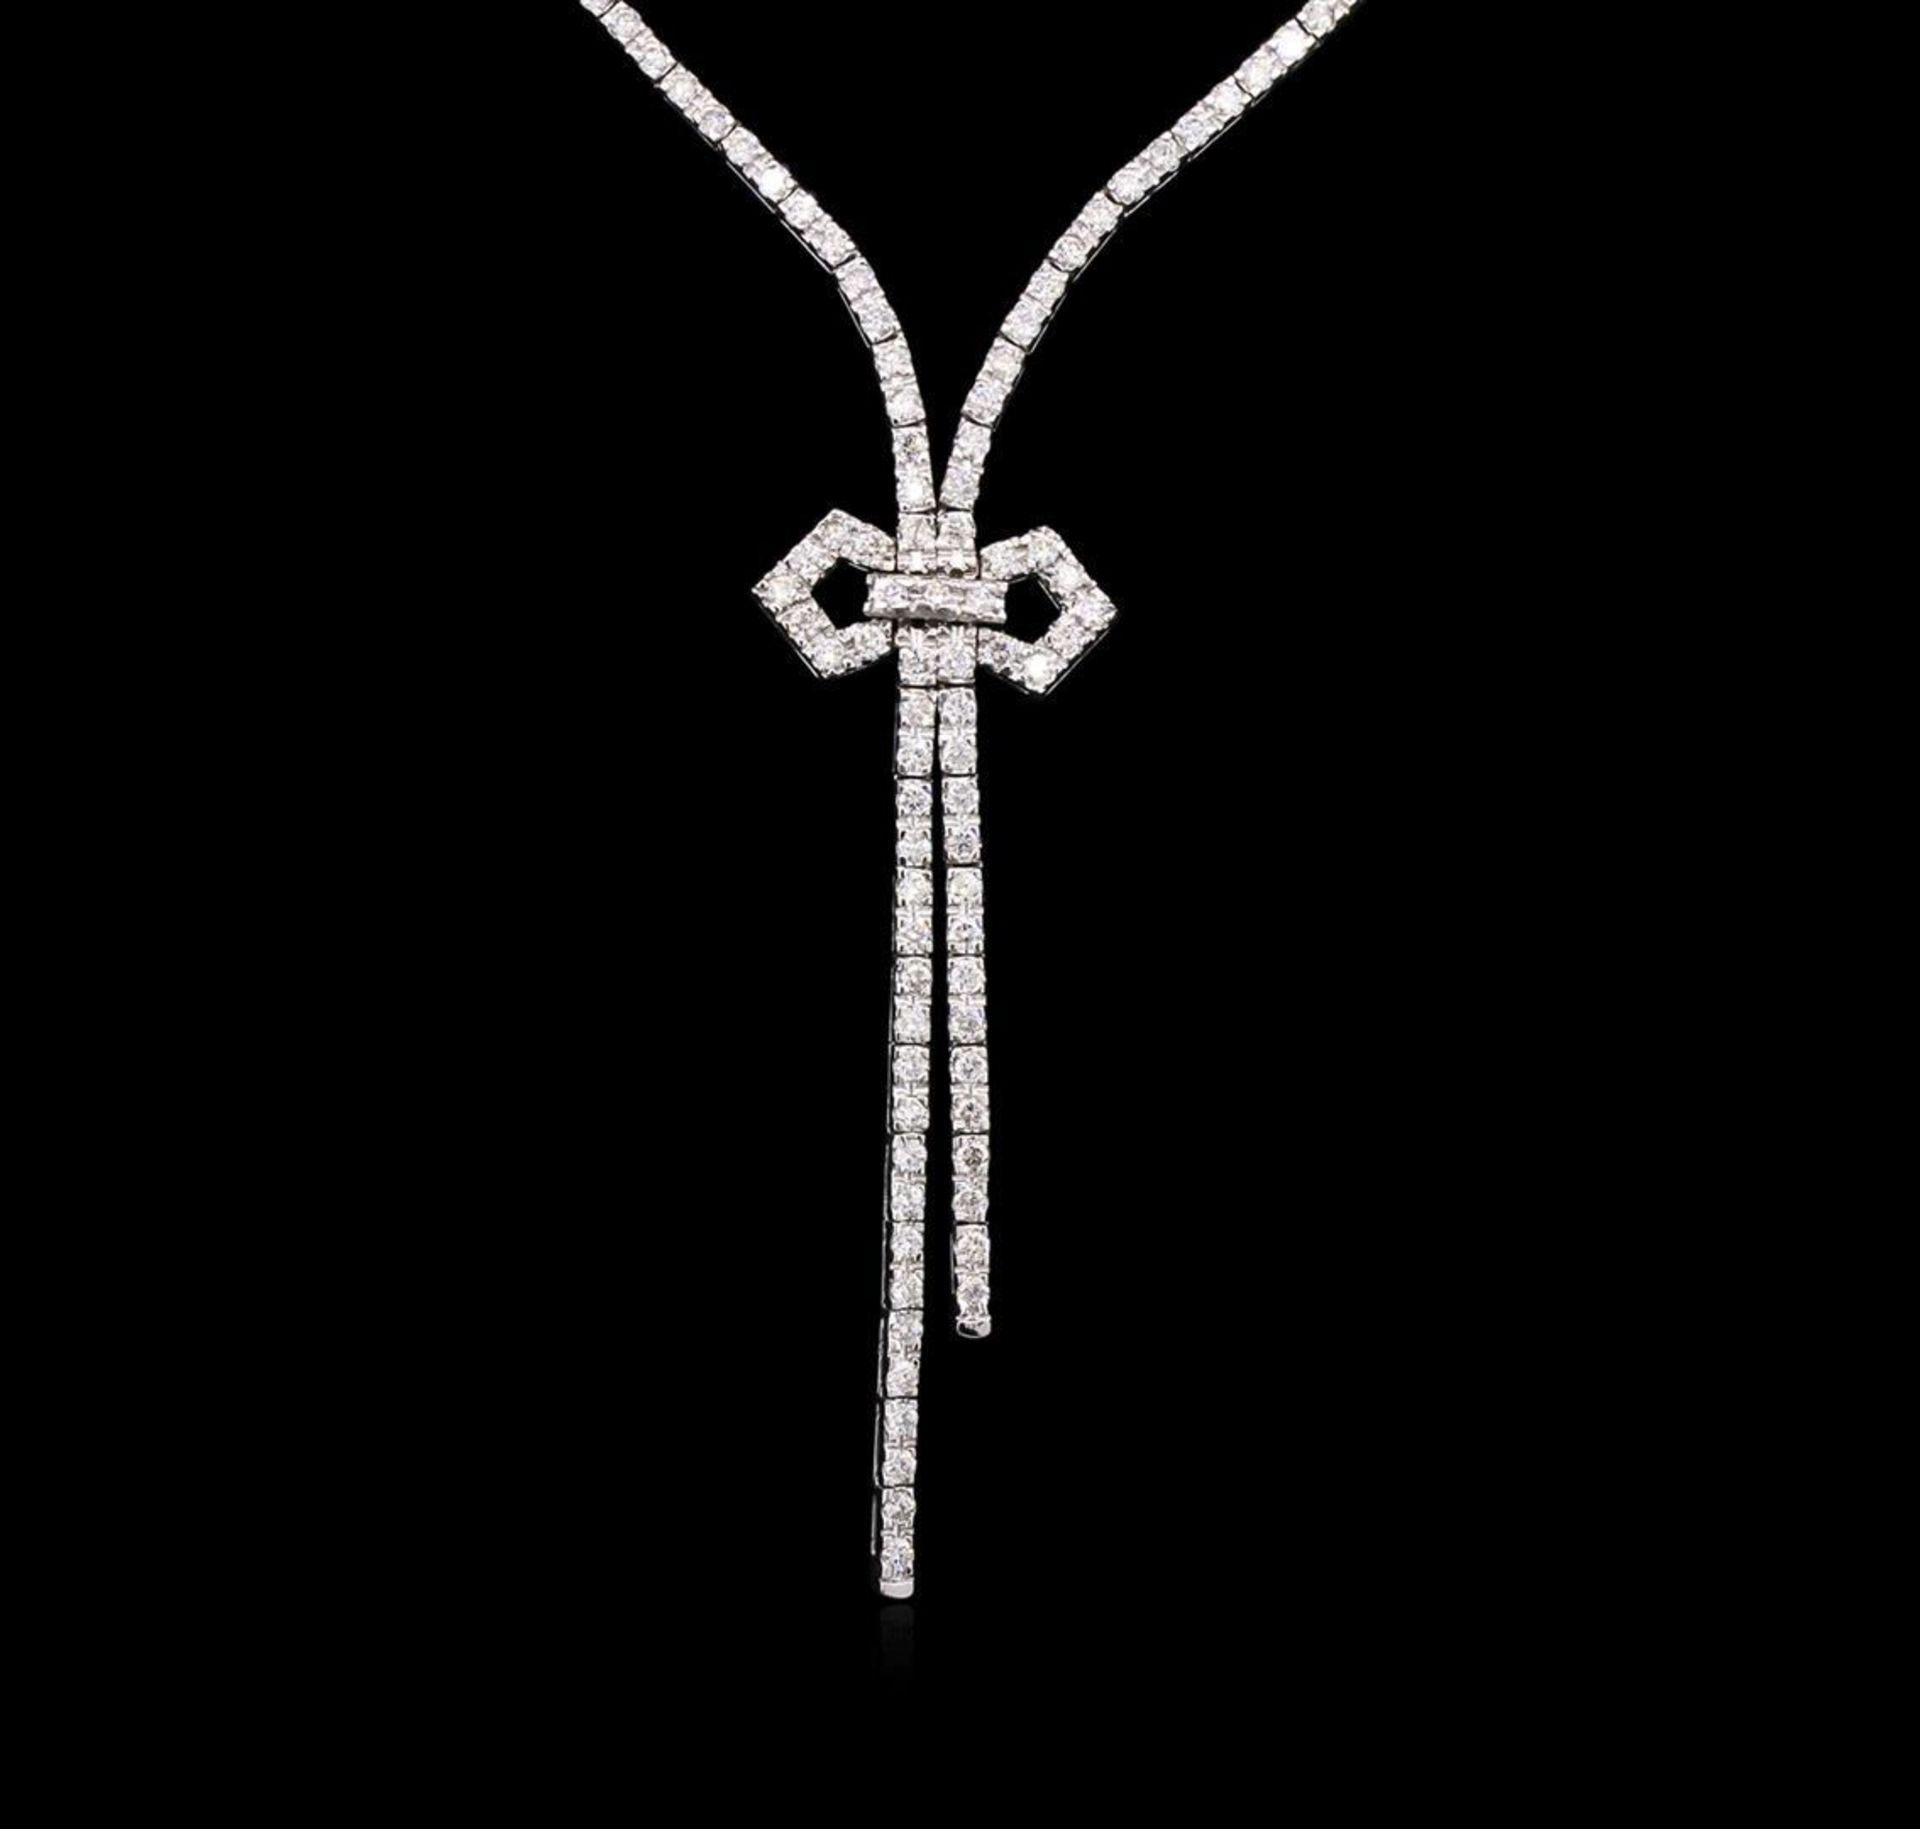 2.85 ctw Diamond Necklace - 14KT White Gold - Image 2 of 3